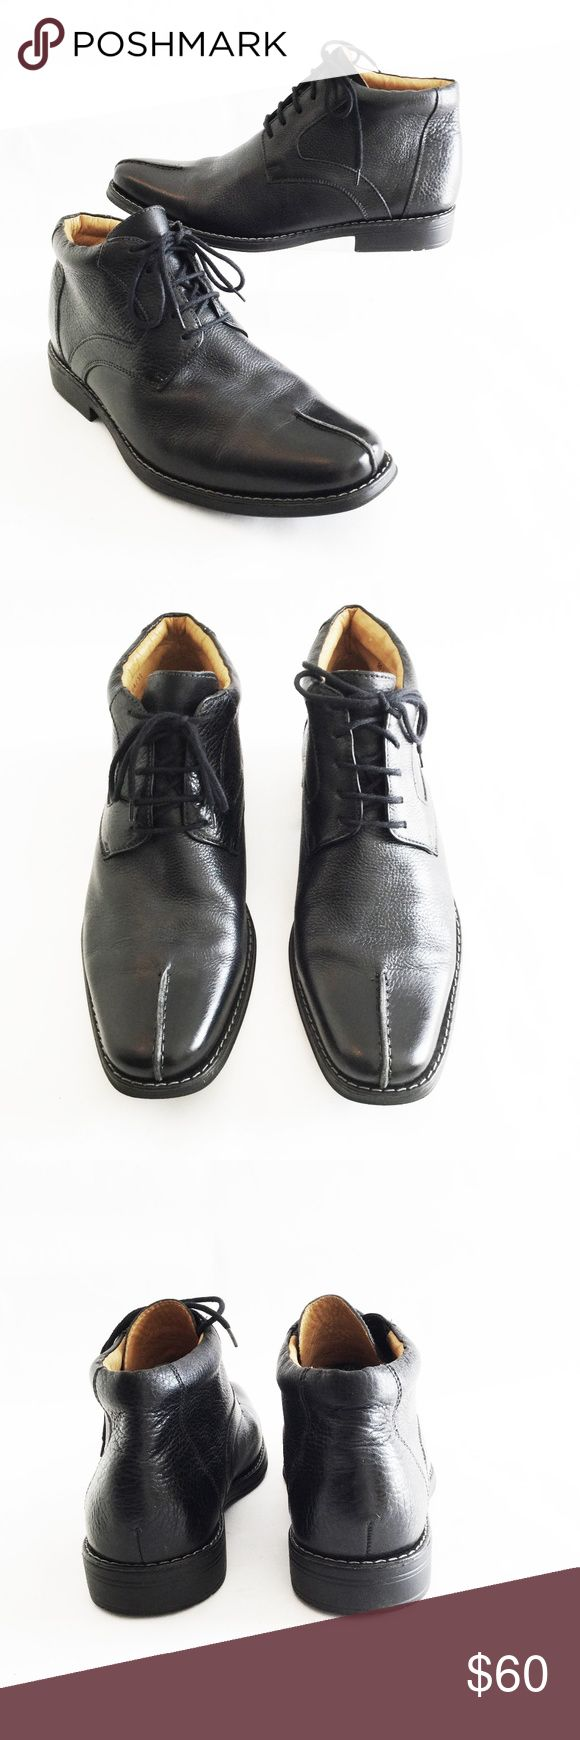 SANDRO MOSCOLONI 10.5 D Black Leather Lace Up SANDRO MOSCOLONI Black Leather Lace Up Chukka Ankle Boots, Size 10.5D  Excellent, pre-owned condition Sandro Moscoloni Shoes Boots